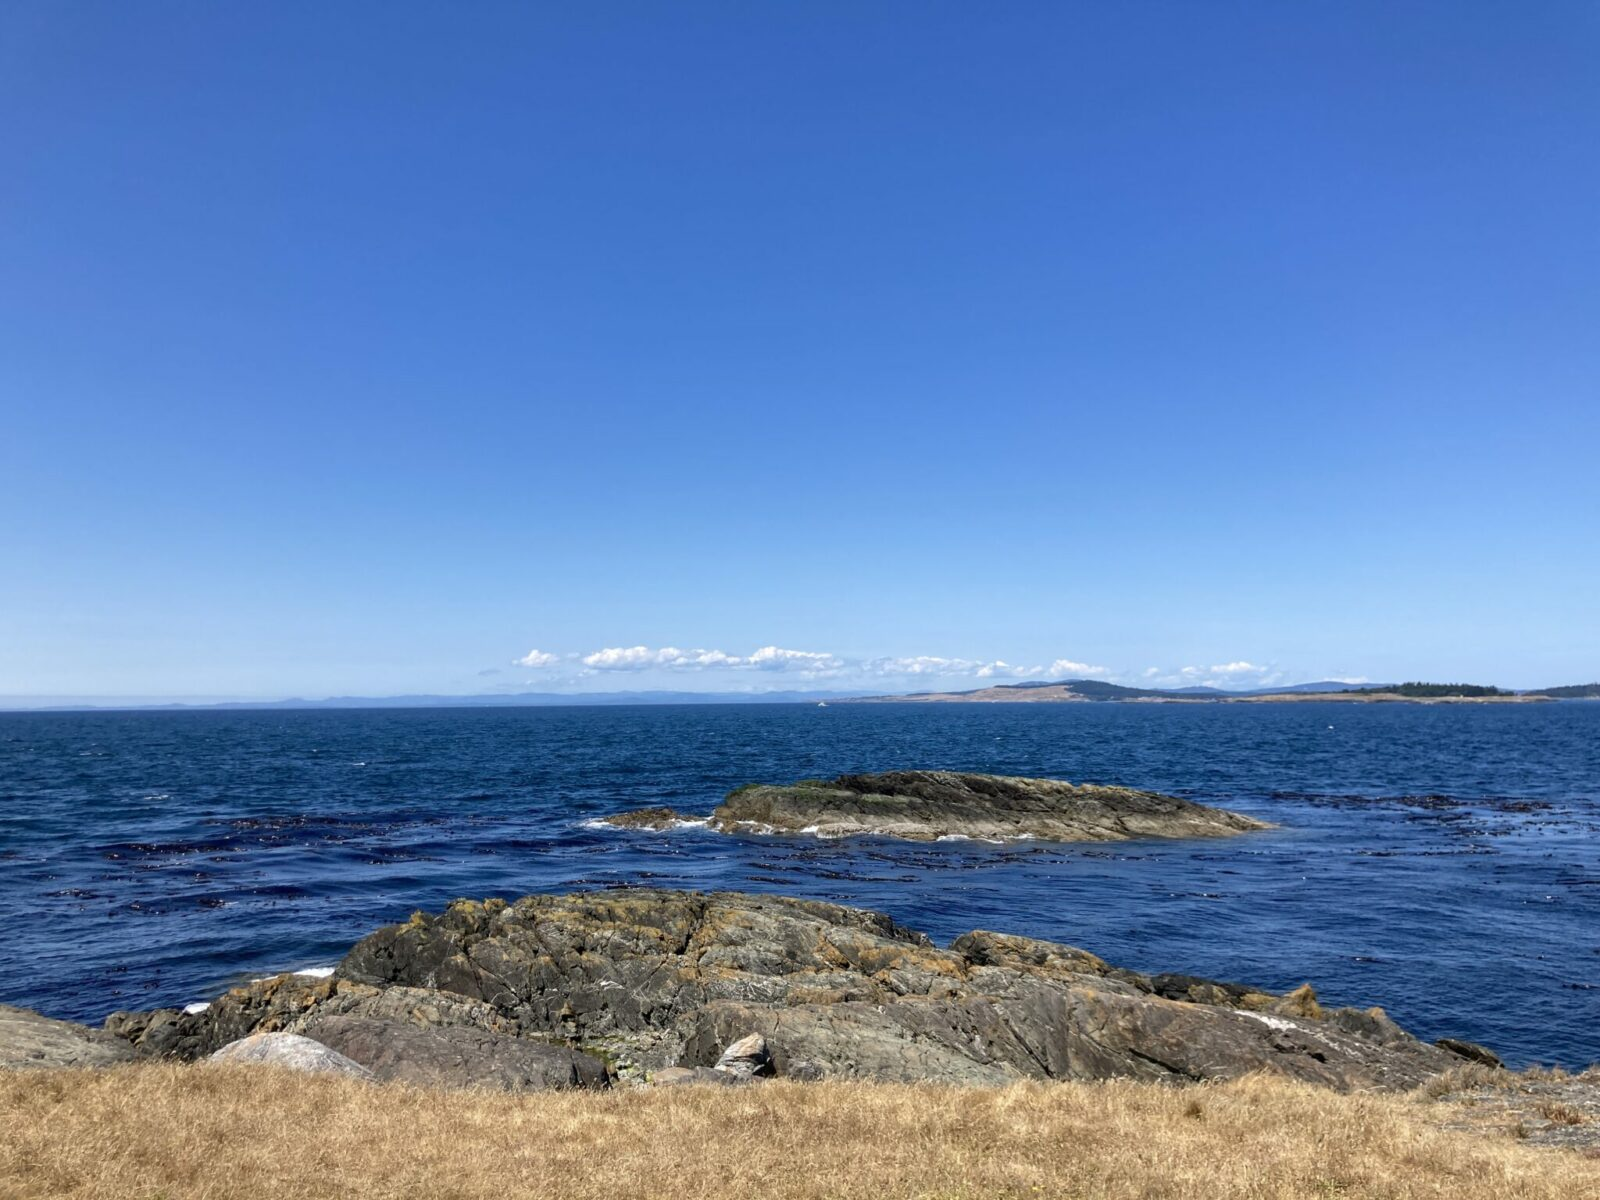 Iceberg Point, one of the best things to do on Lopez Island is at the end of a short hike. There are rocks sticking out into the blue water of the Salish Sea and some rocks exposed just off shore. In the distance is another island